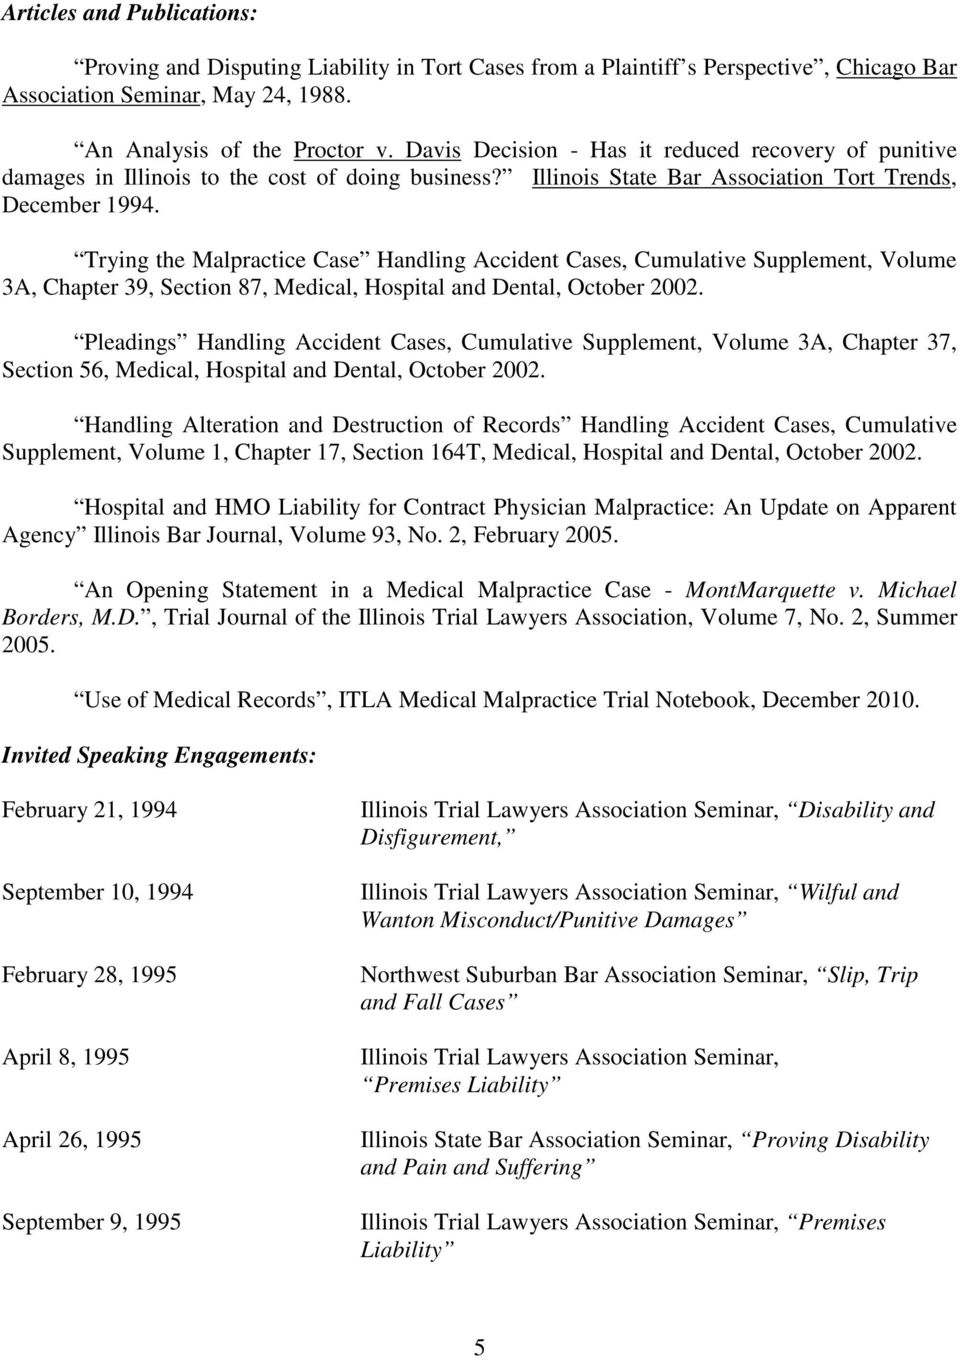 Trying the Malpractice Case Handling Accident Cases, Cumulative Supplement, Volume 3A, Chapter 39, Section 87, Medical, Hospital and Dental, October 2002.